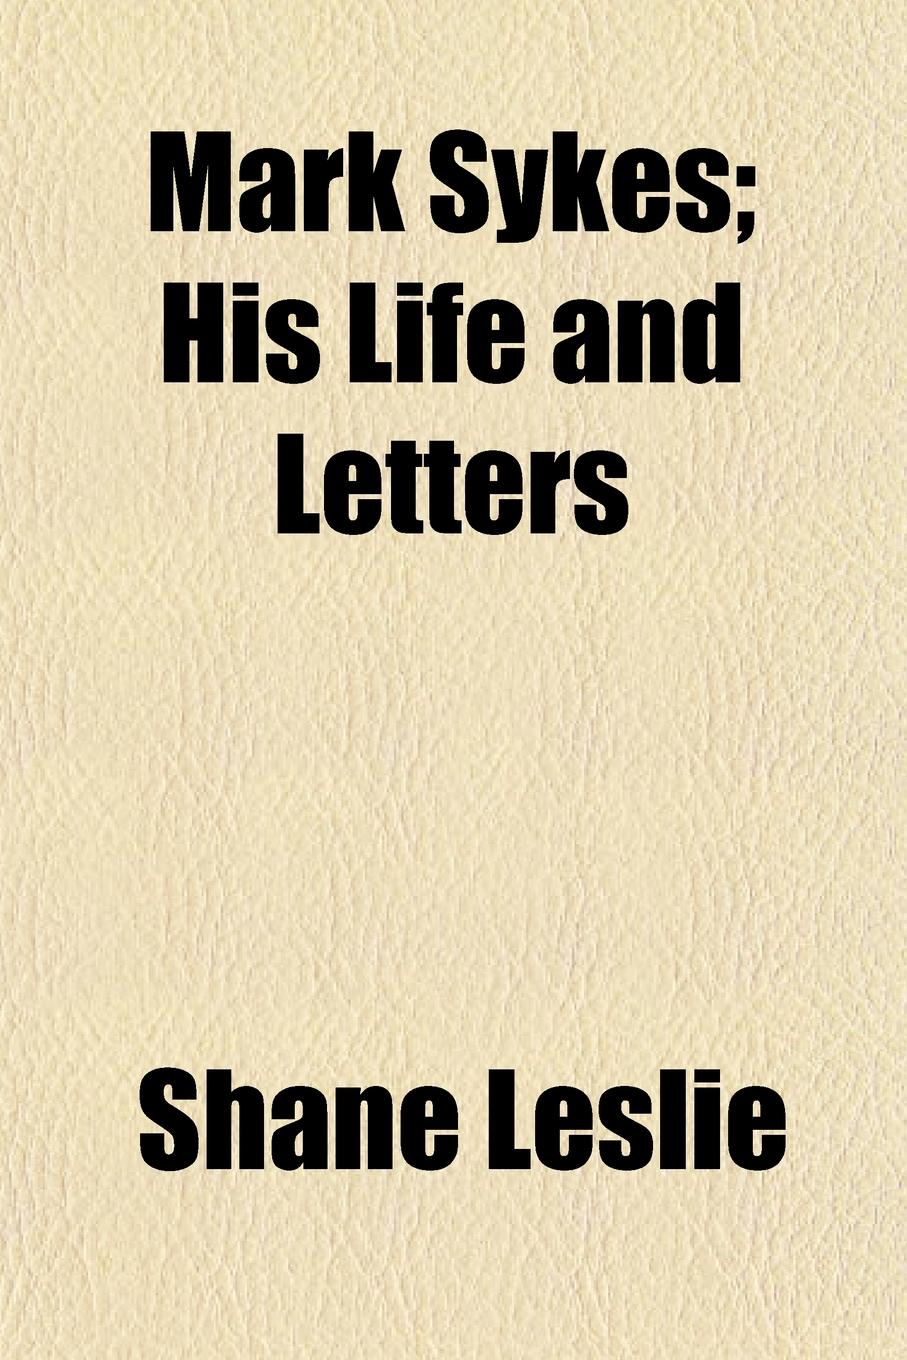 Shane Leslie Mark Sykes; His Life and Letters free shipping kayipht cm400ha1 24h can directly buy or contact the seller